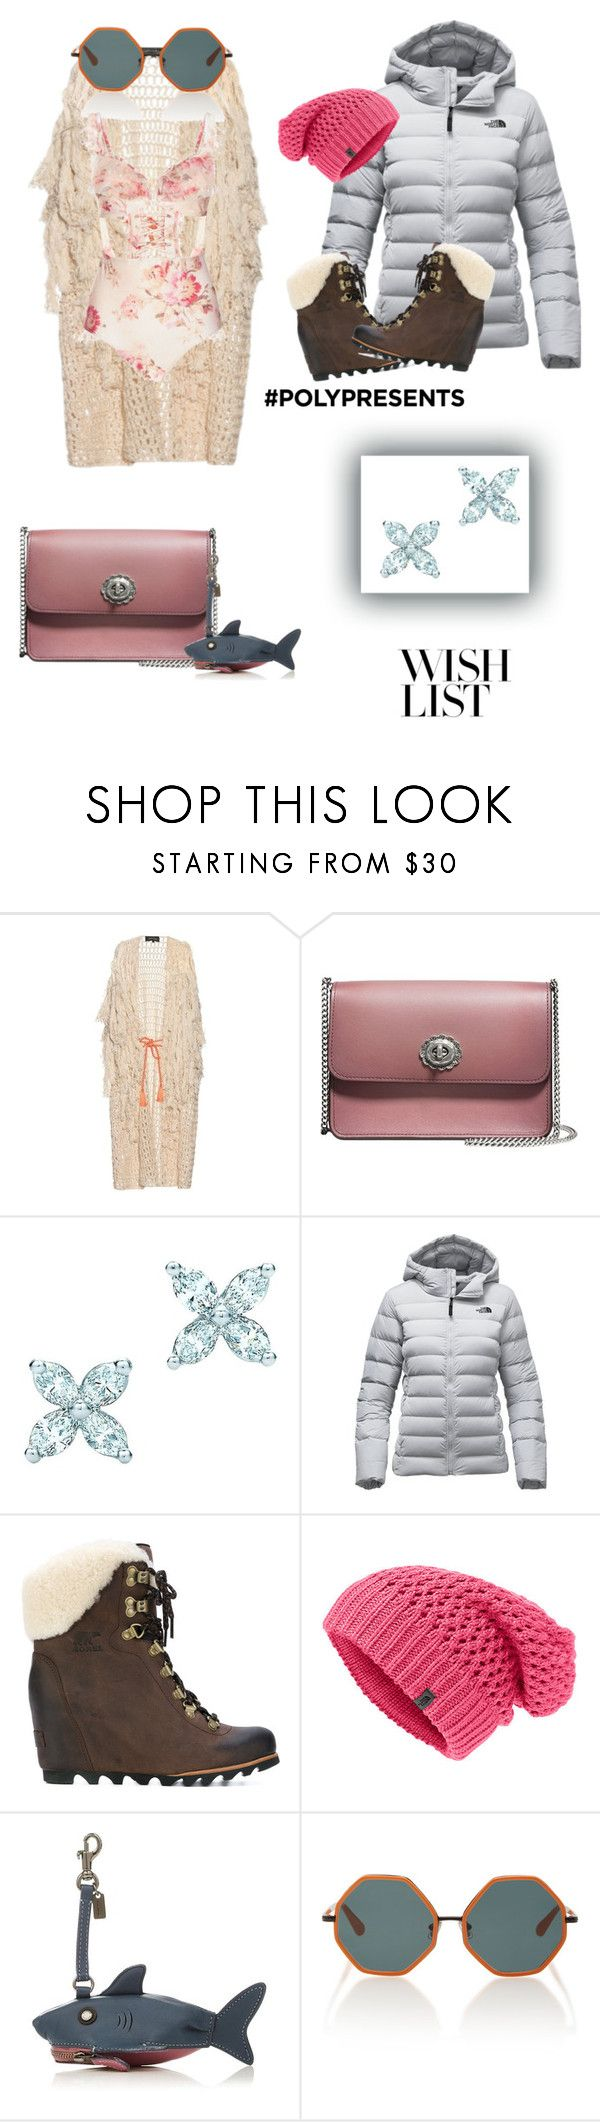 """#PolyPresents: Wish List"" by queenchelleisboomkoo ❤ liked on Polyvore featuring Tabula Rasa, Coach, Tiffany & Co., The North Face, SOREL, Rosie Assoulin, Zimmermann, contestentry and polyPresents"